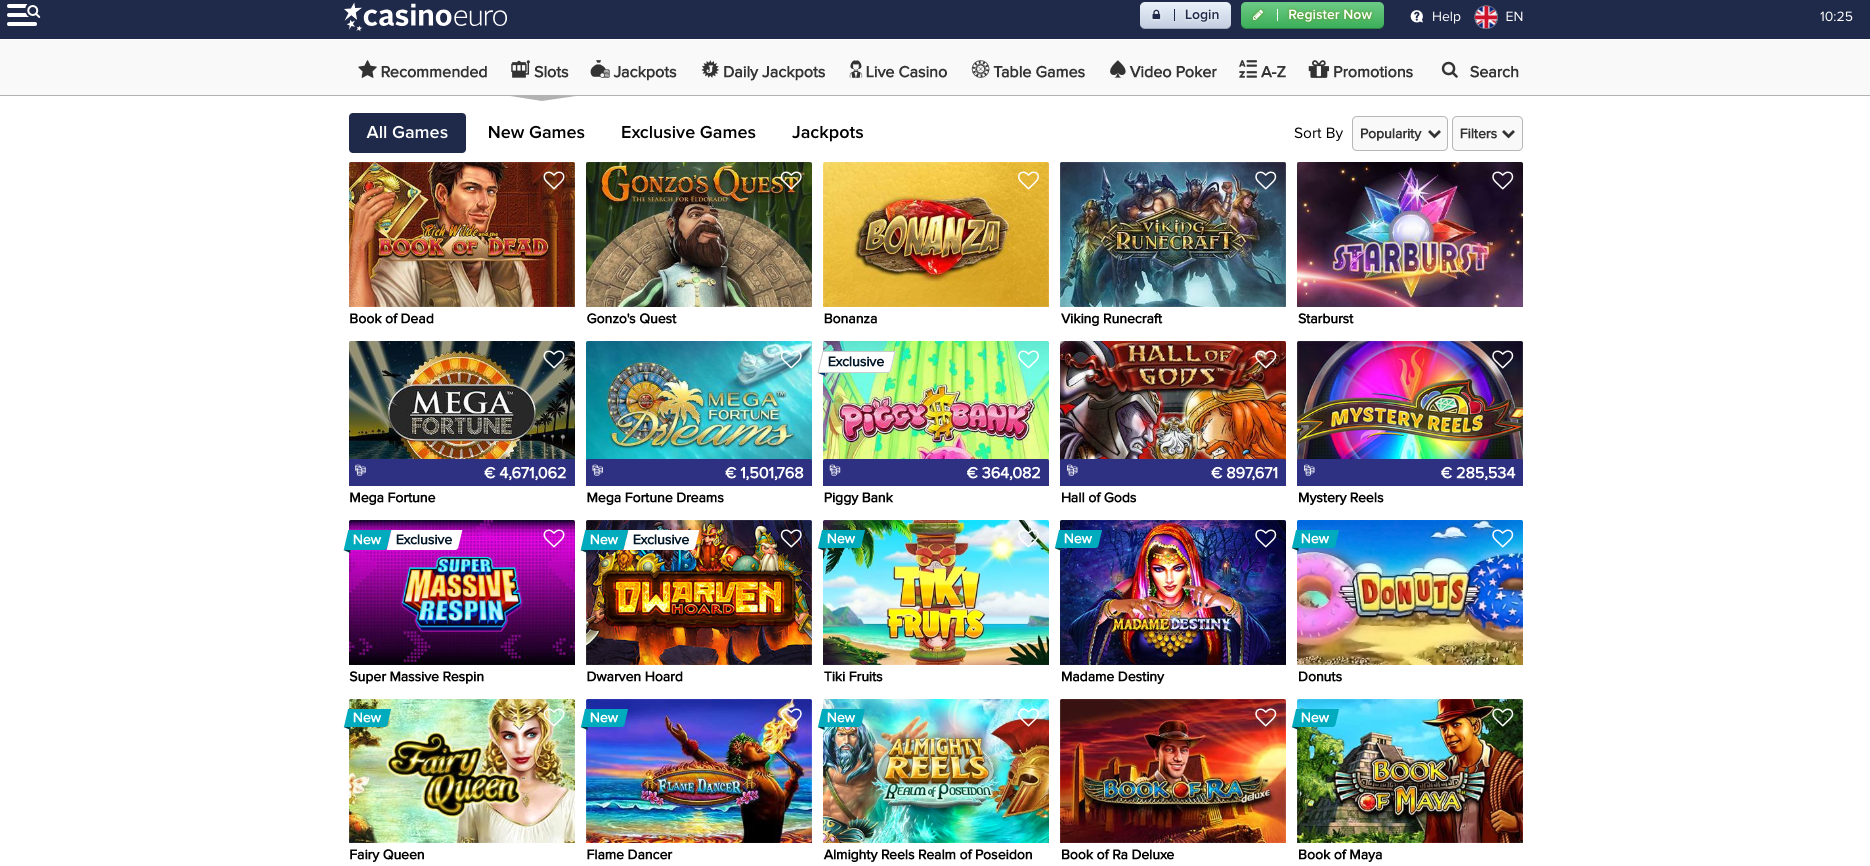 A screenshot of top slot games available at casino Euro casino library